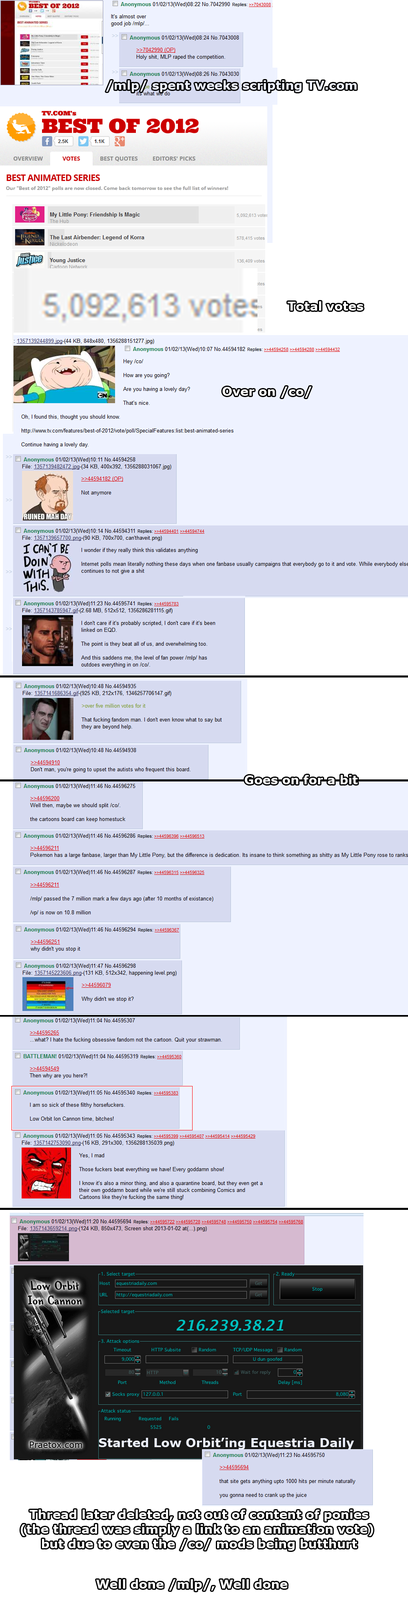 /mlp/ kicked /co/ in the ass and then made them cry about it for hours on end